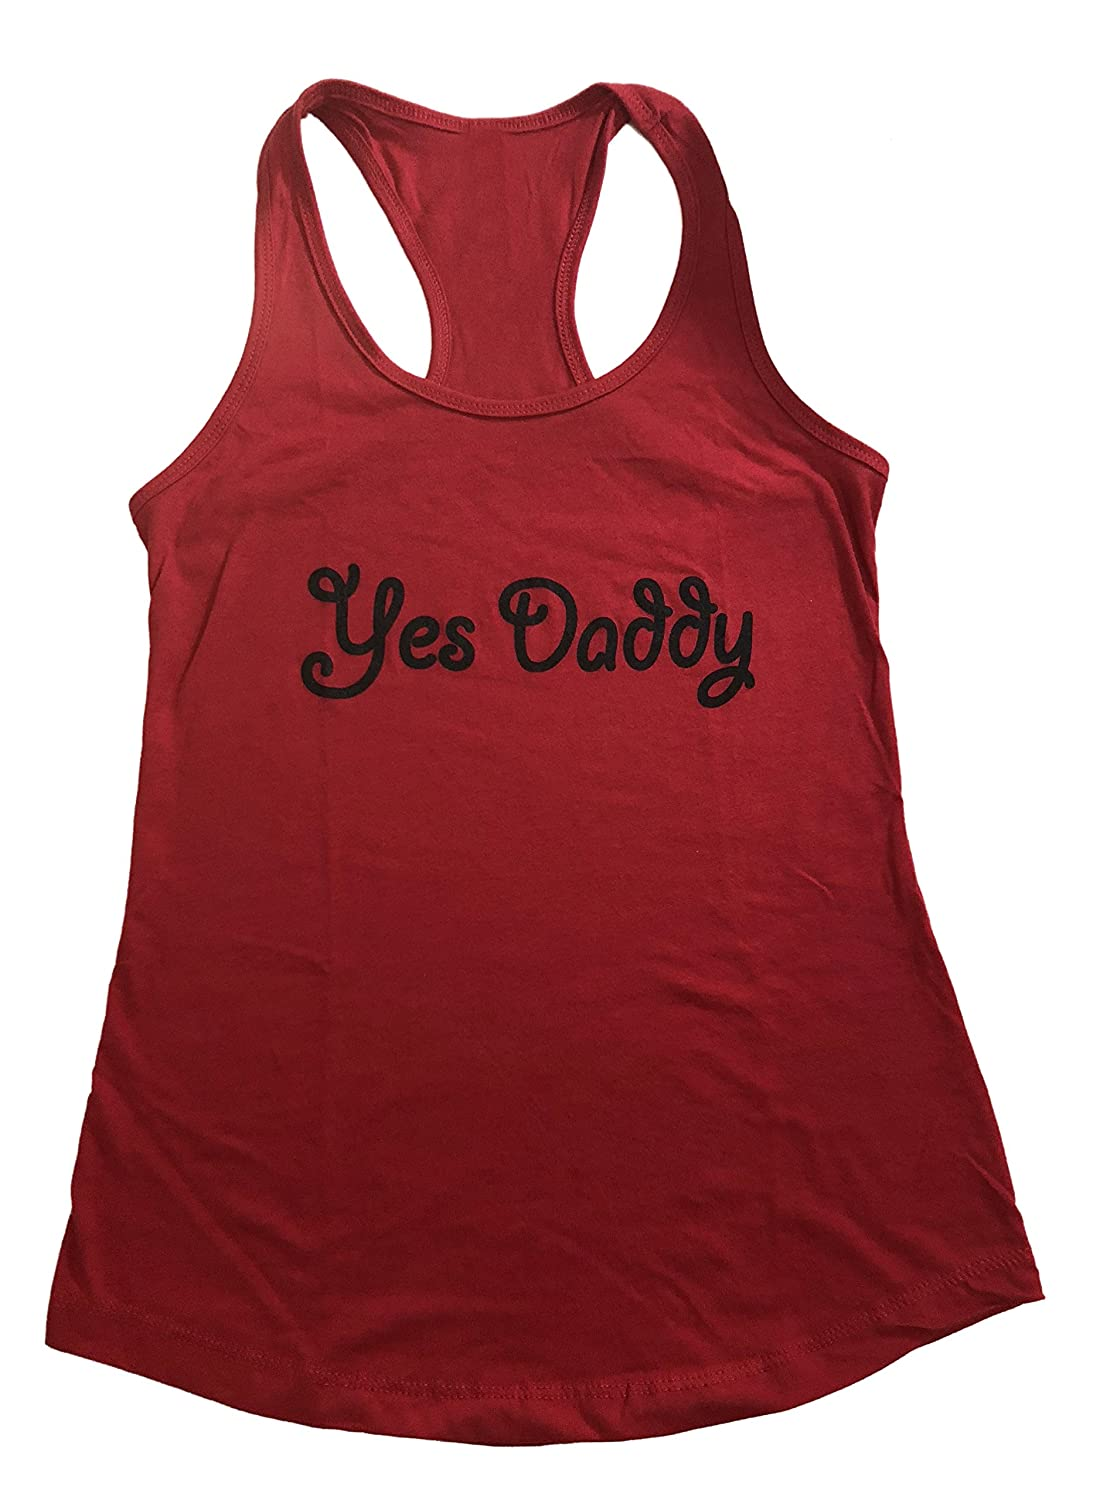 b5de408b7acc3d Yes Daddy Ladies Racerback Tank Top Graphic T Shirt Fetish at Amazon Women s  Clothing store